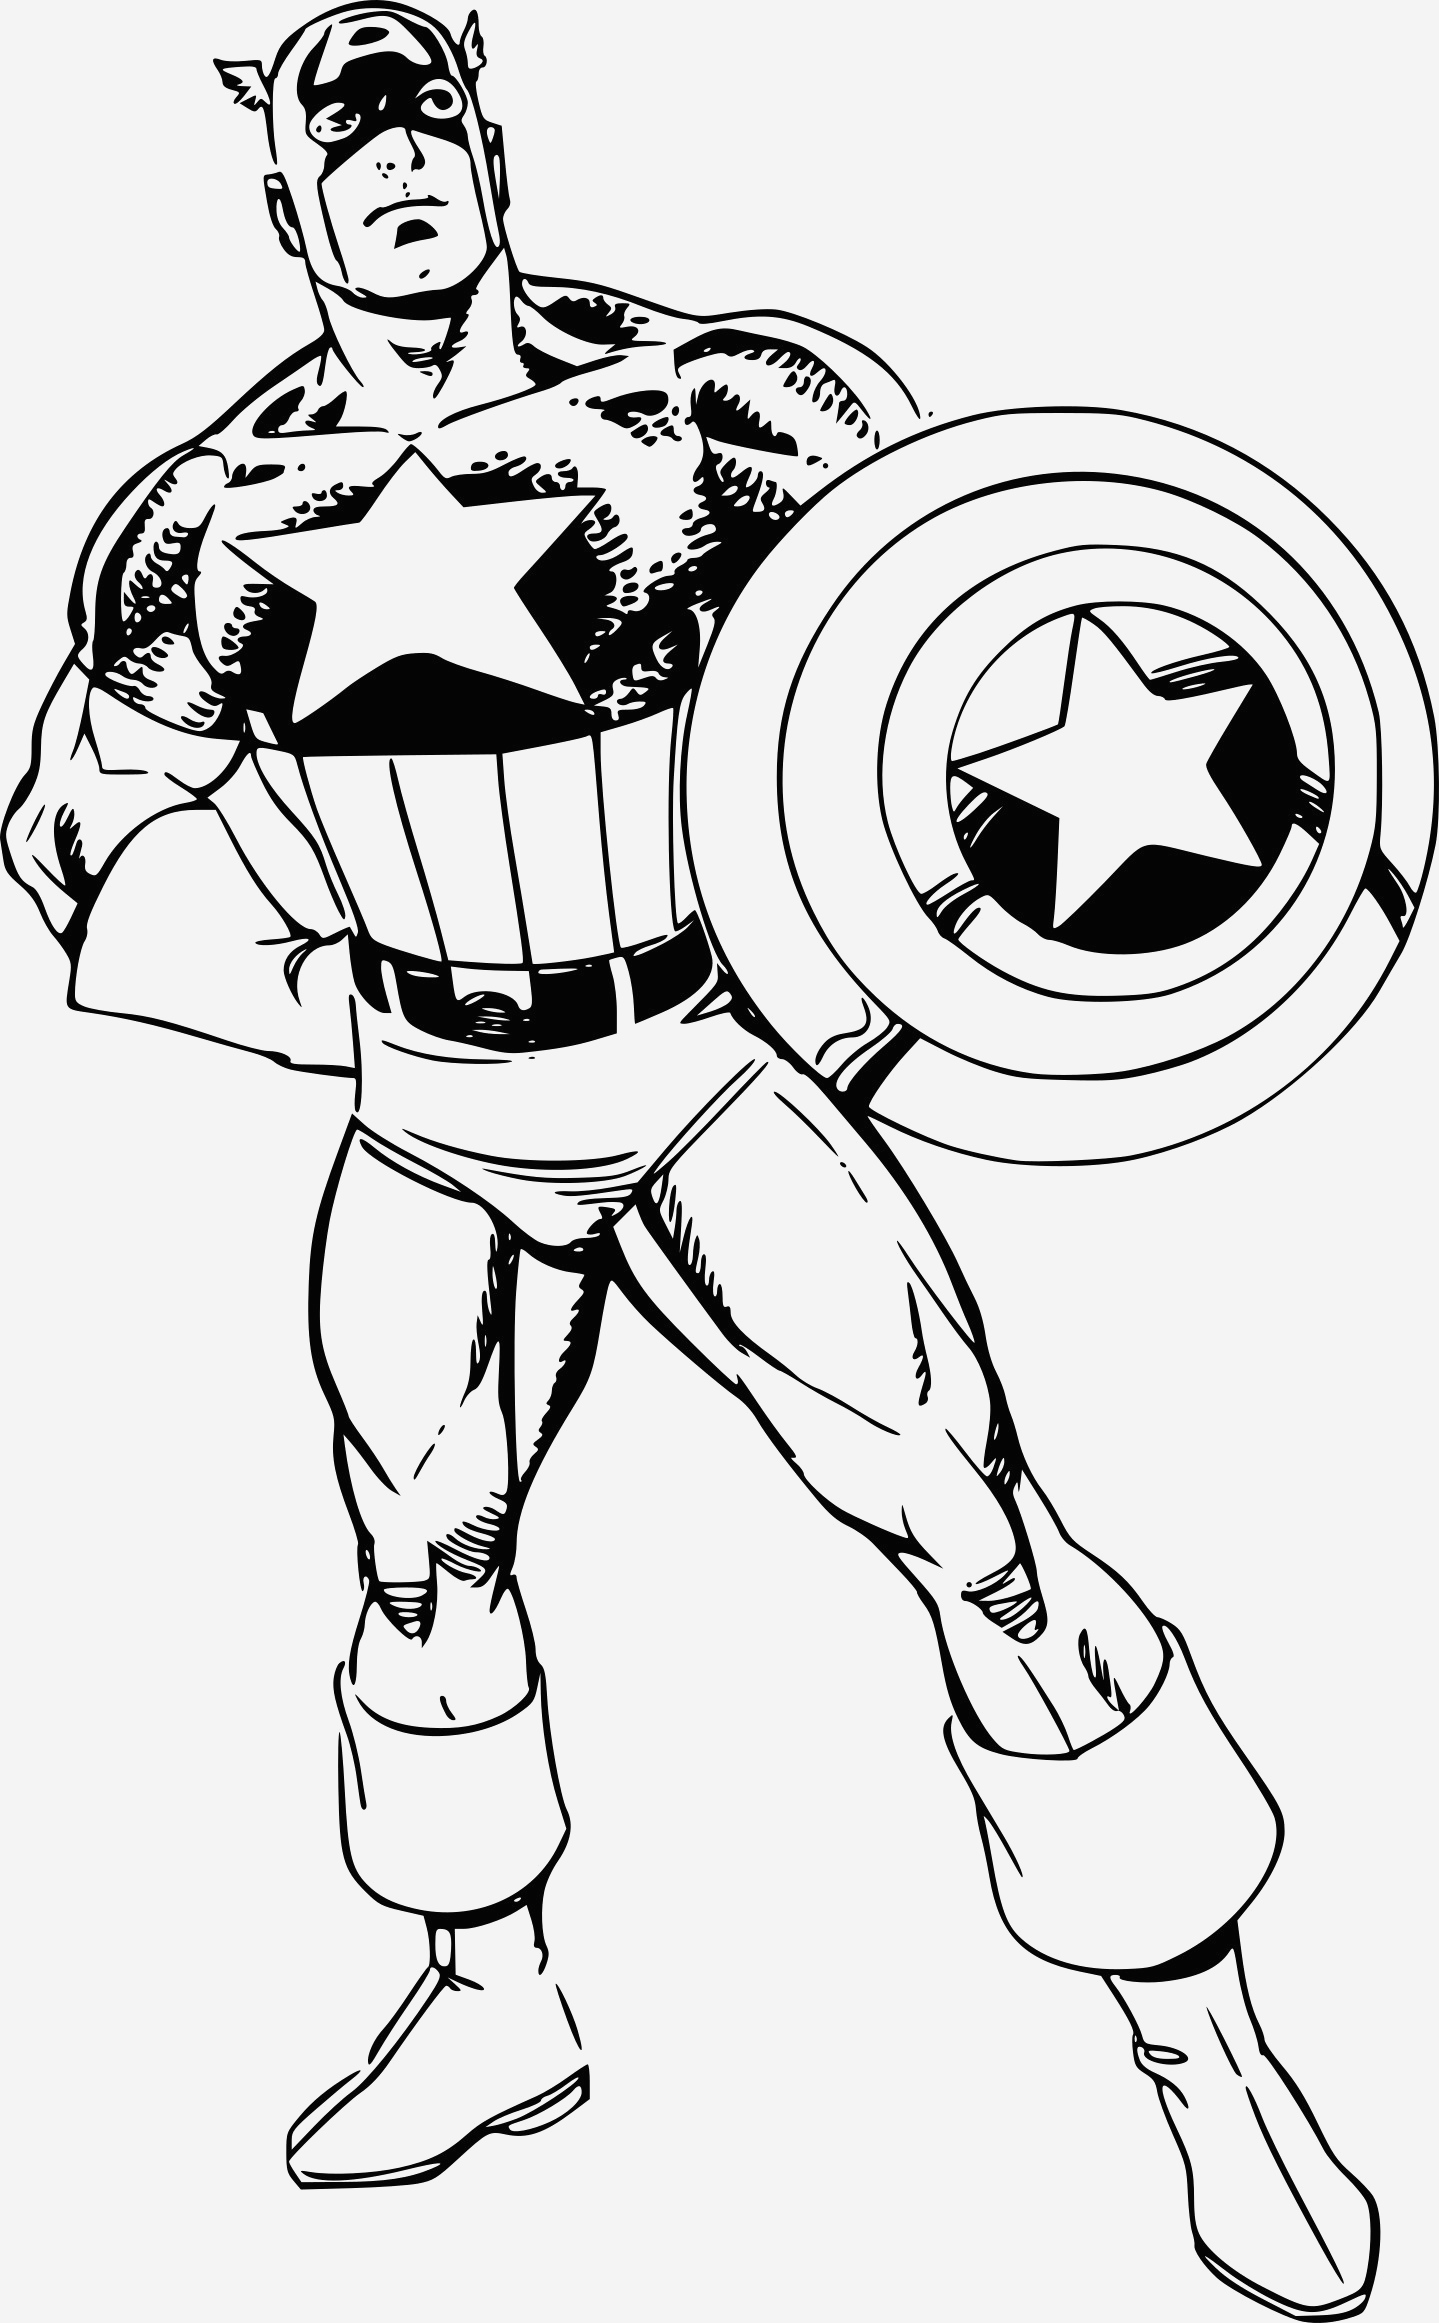 Coloriage Captain America Unique Coloriage Super Héros Capain America   Imprimer Sur Of Coloriage Captain America